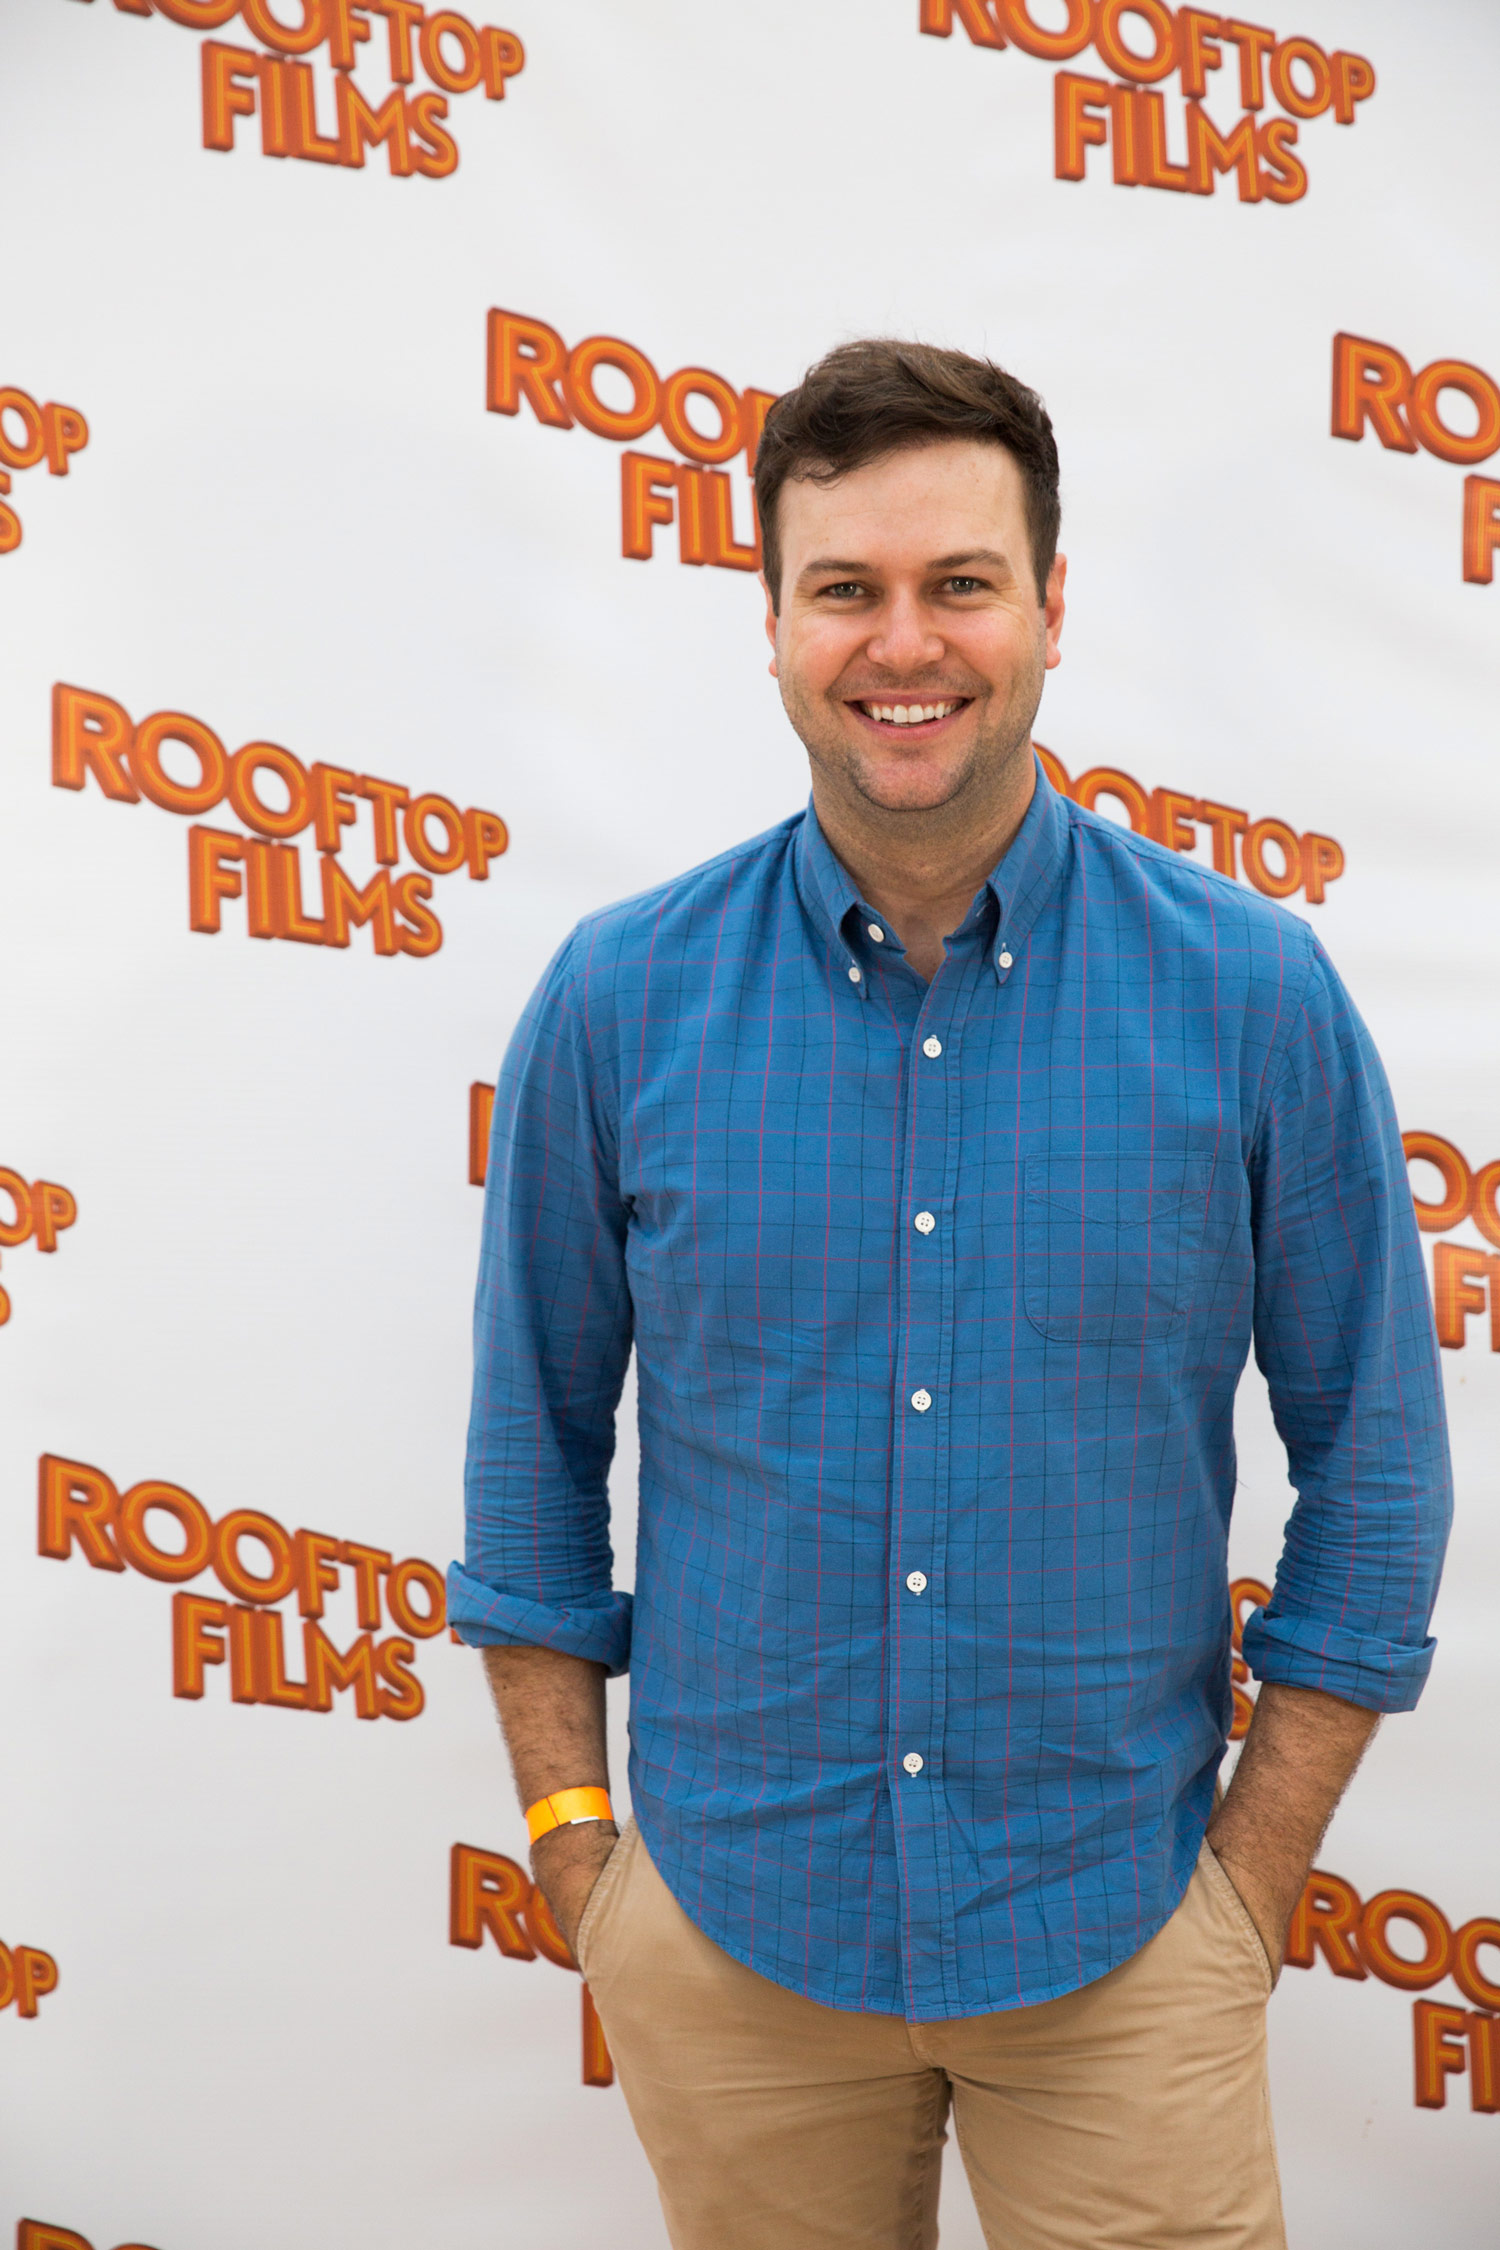 taran-killam-rooftop-films-1.jpg